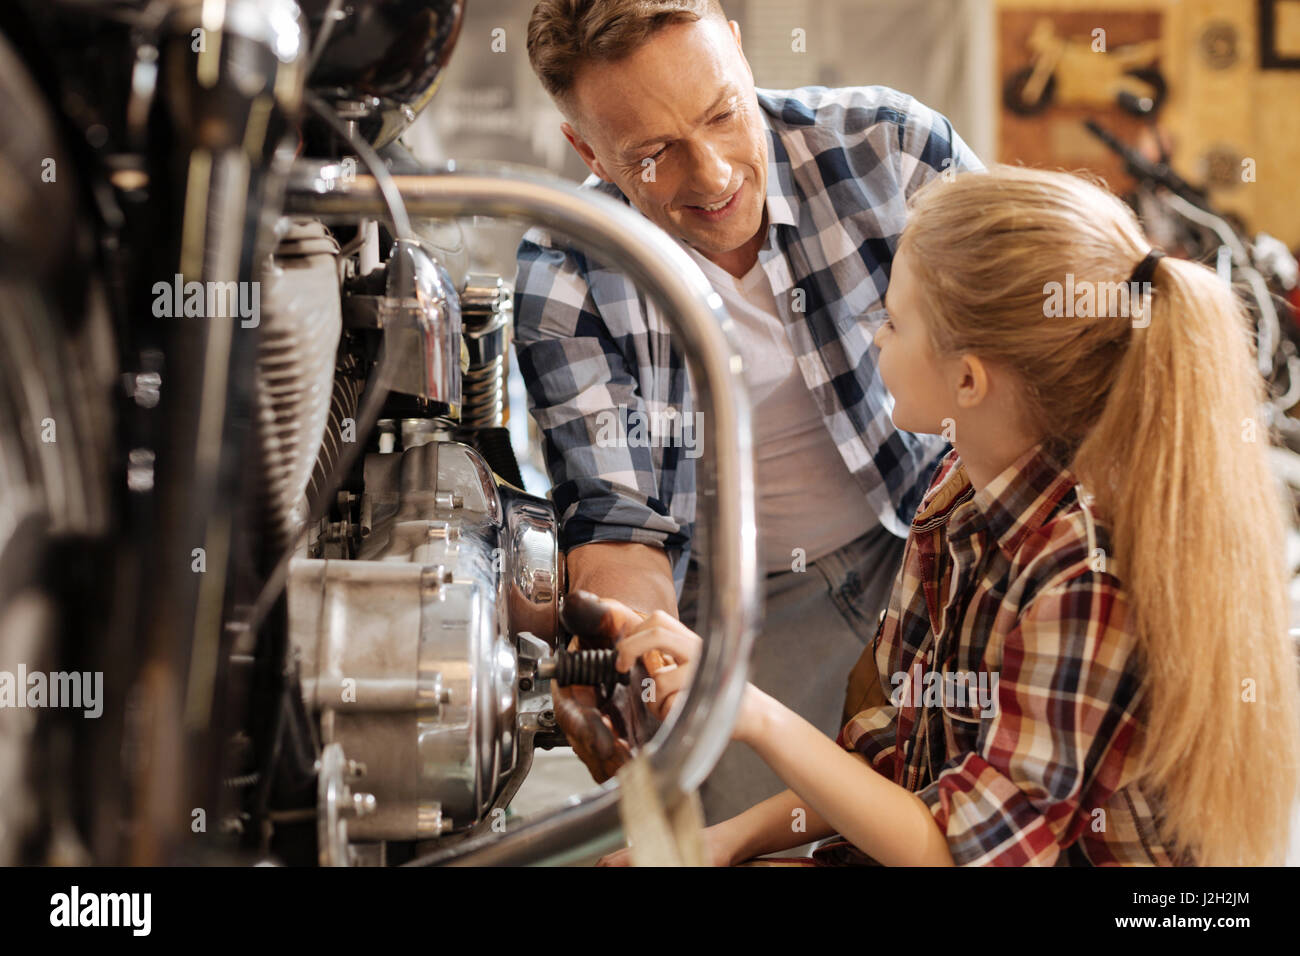 Capable mechanic telling daughter about mechanisms of the bike - Stock Image